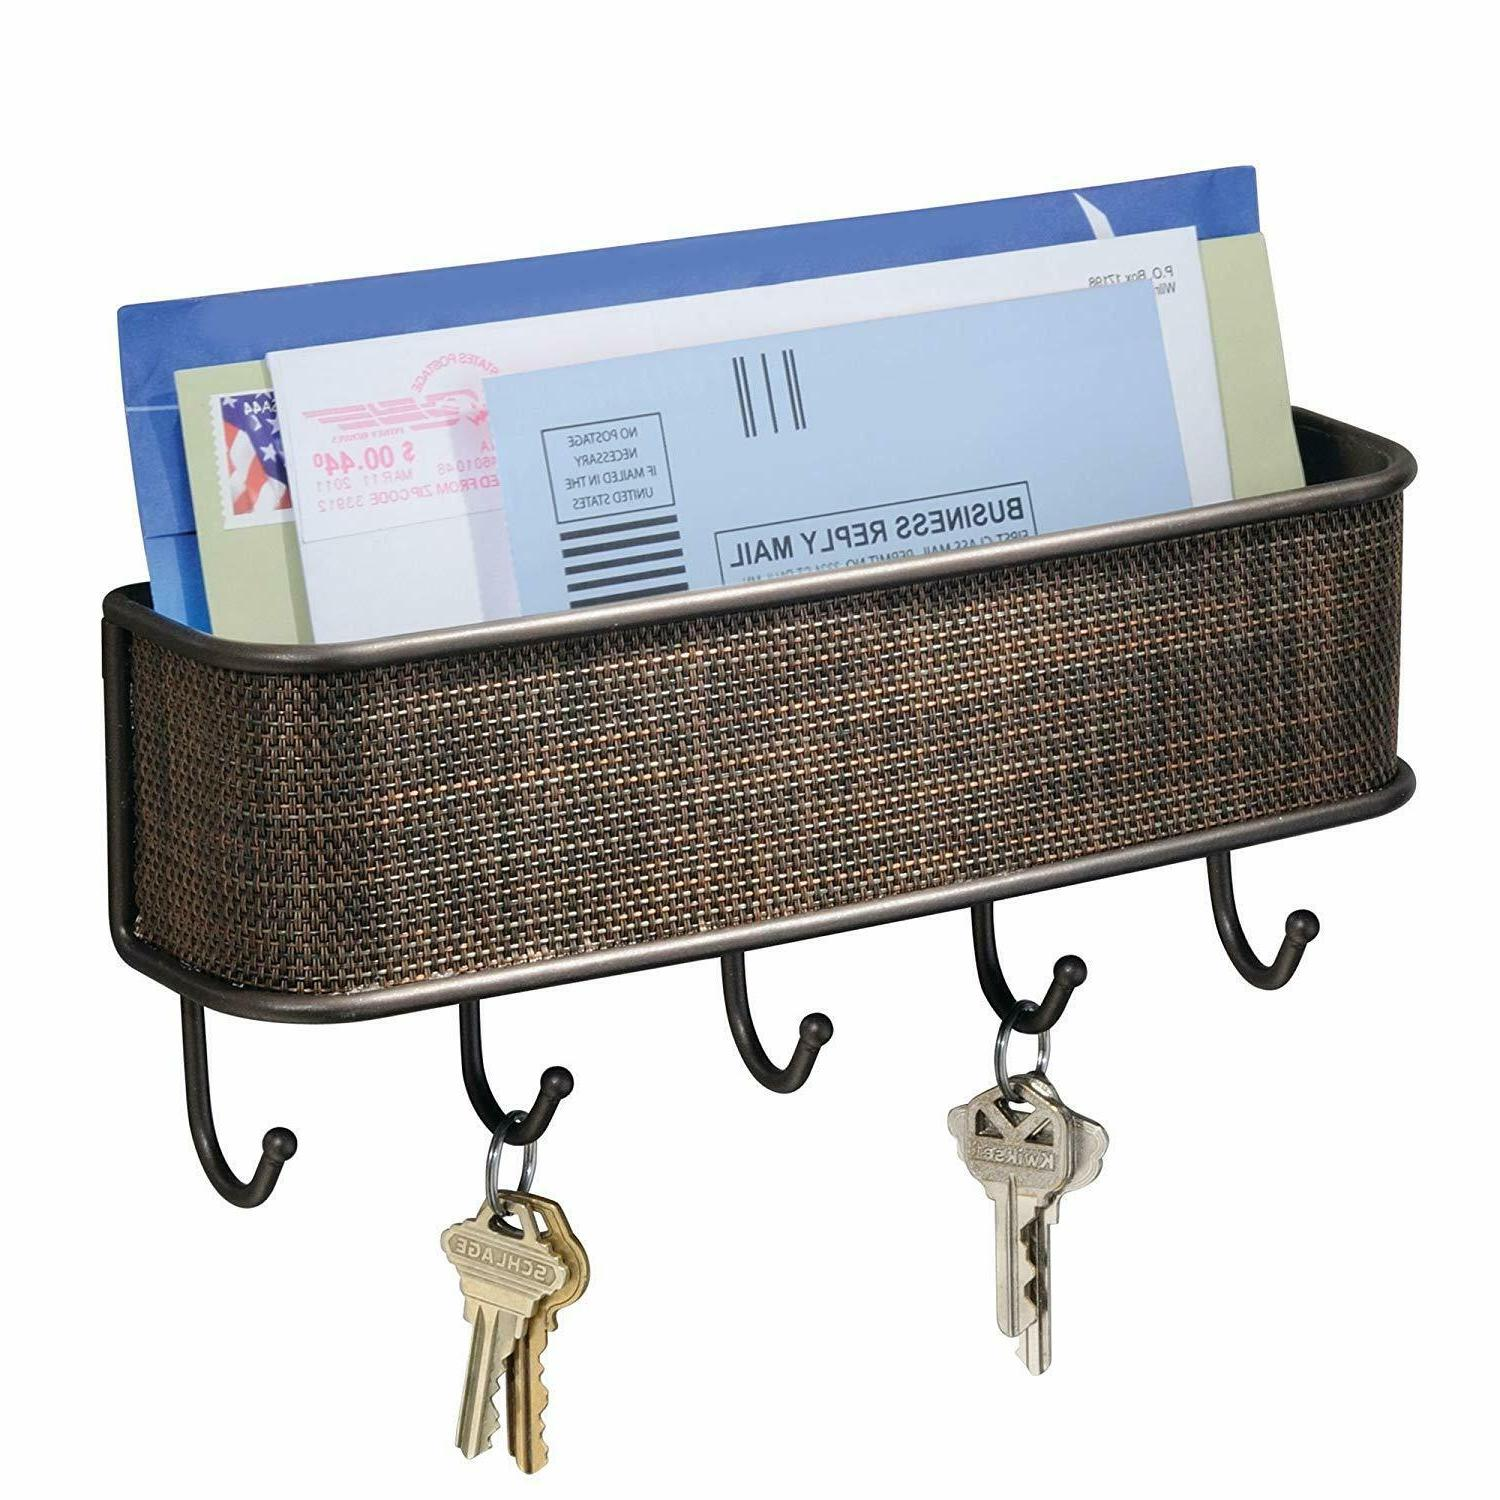 Key Holder Mail Rack Wall Mount Hooks Entryway Mail Organize